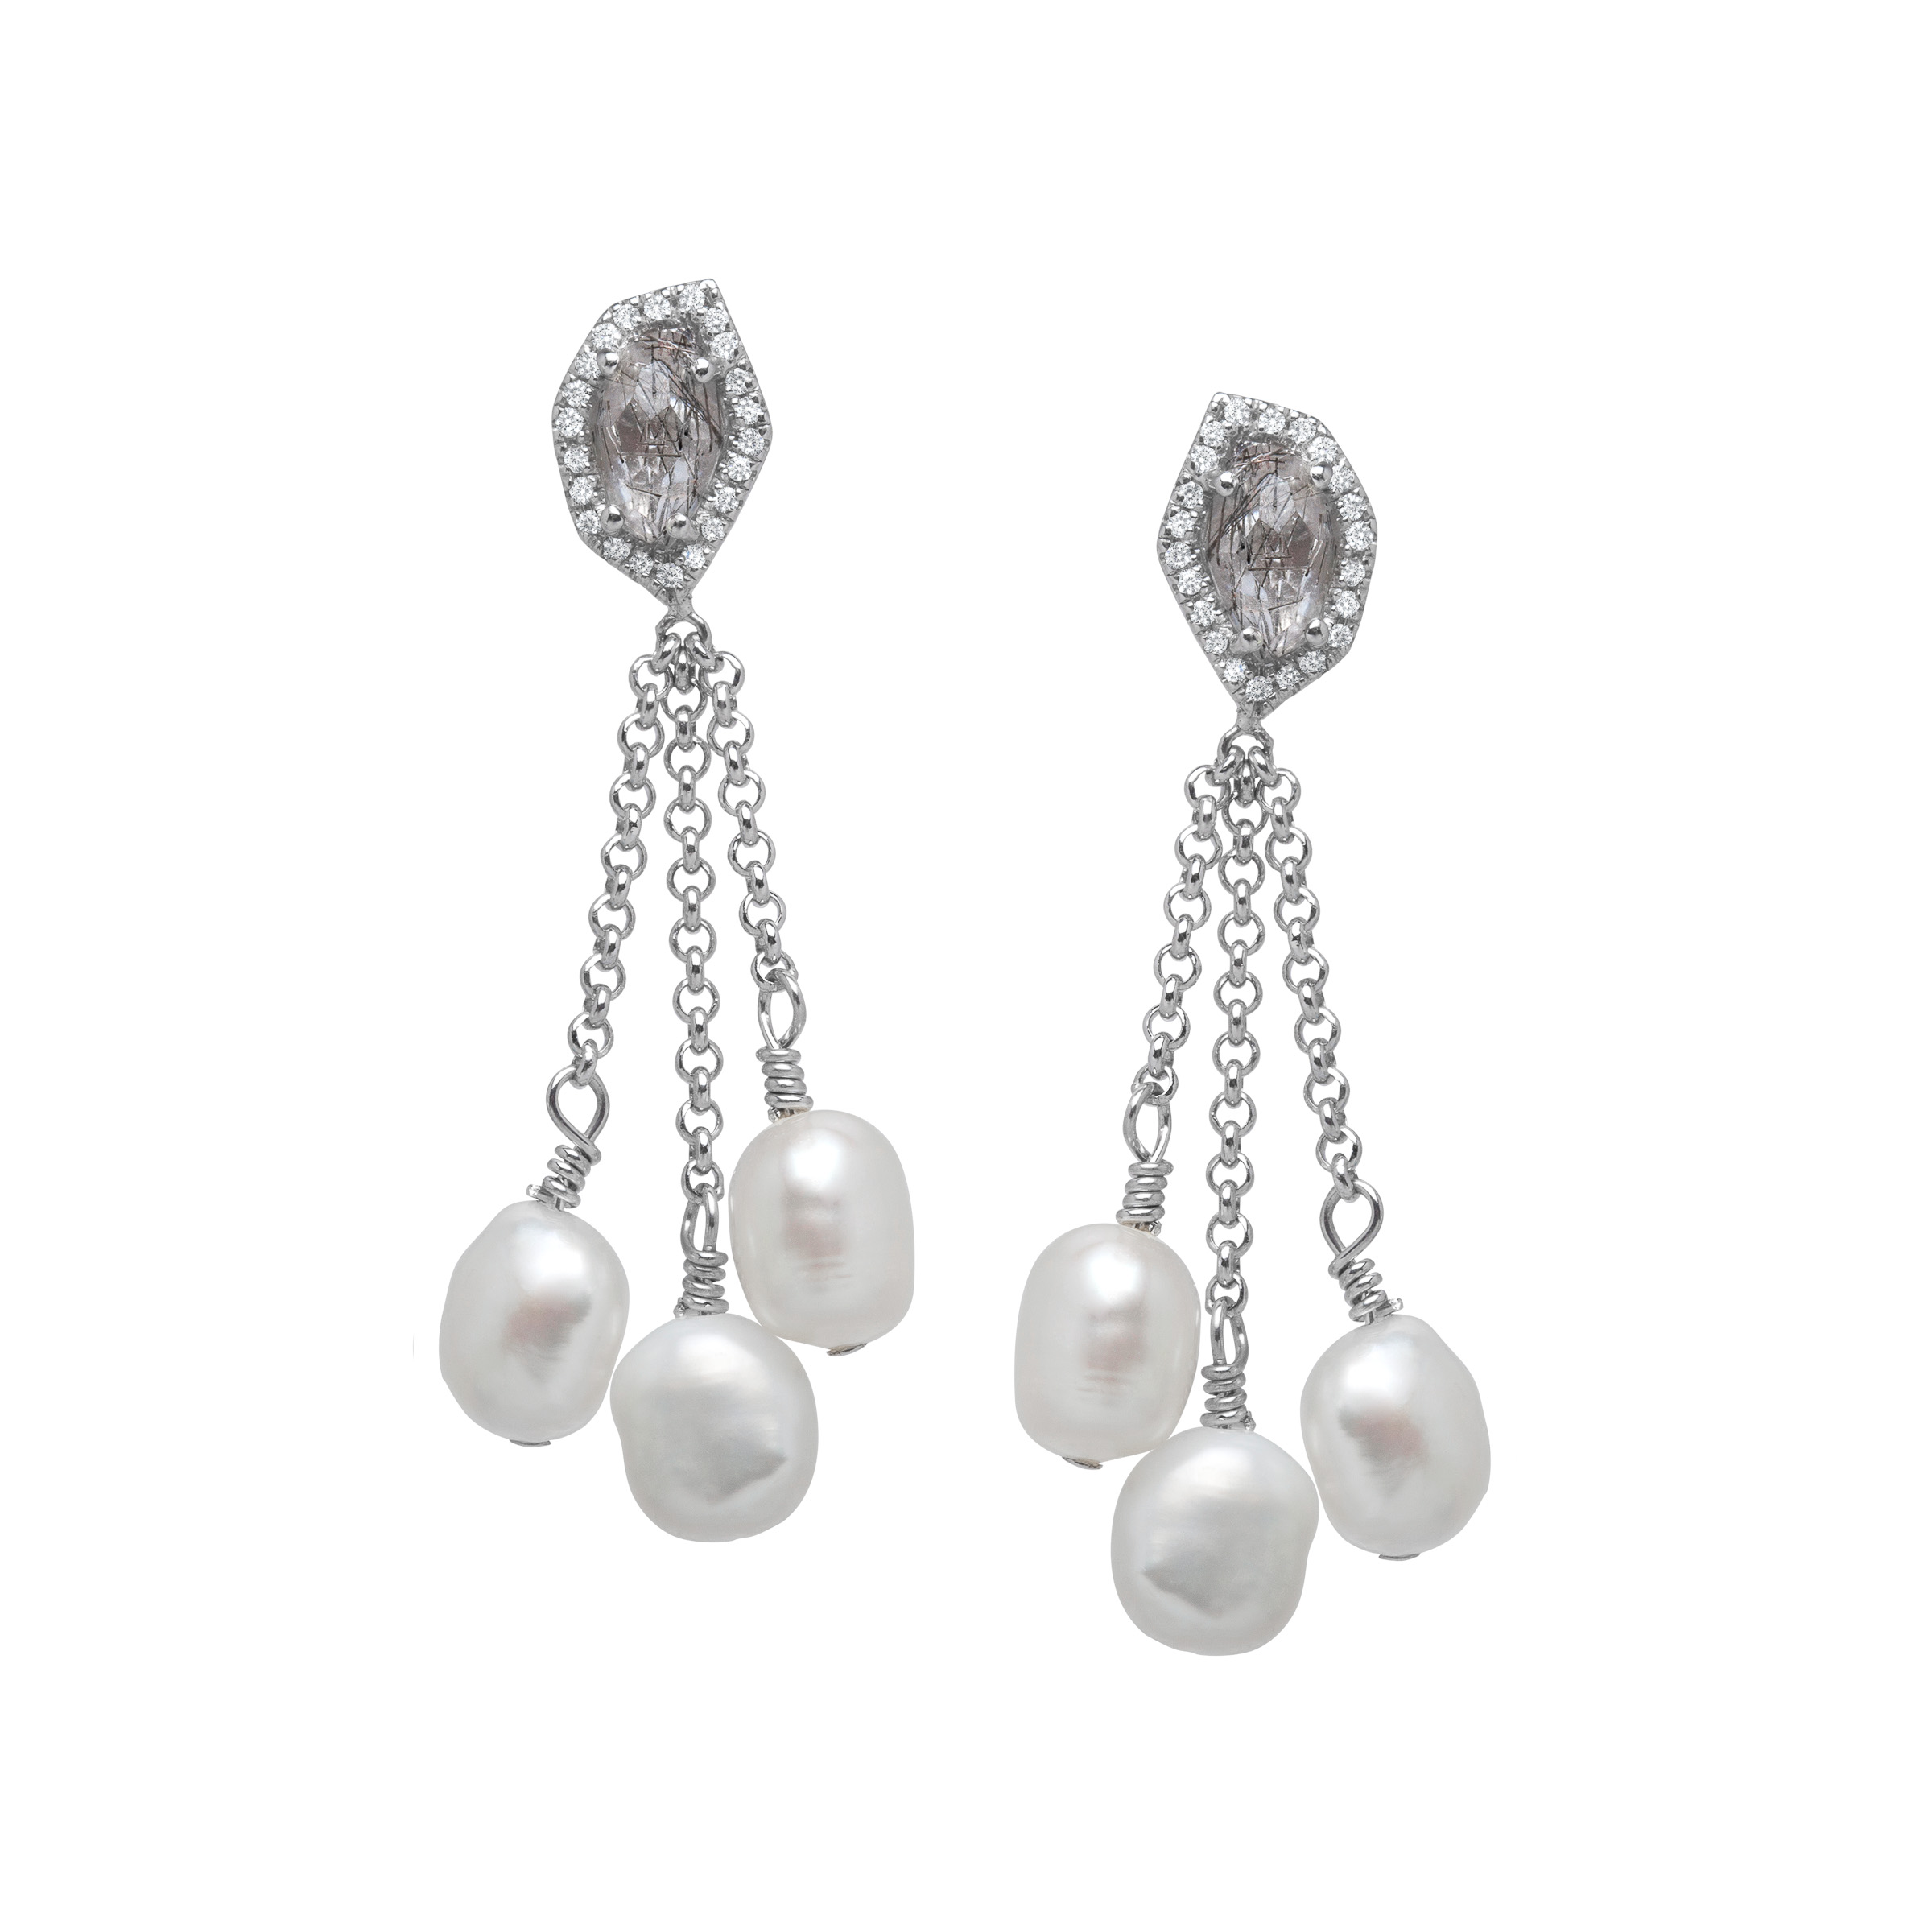 7/8 ct Quartz and 1/8 ct Diamond Drop Earrings with Freshwater Cultured Pearls in Sterling Silver